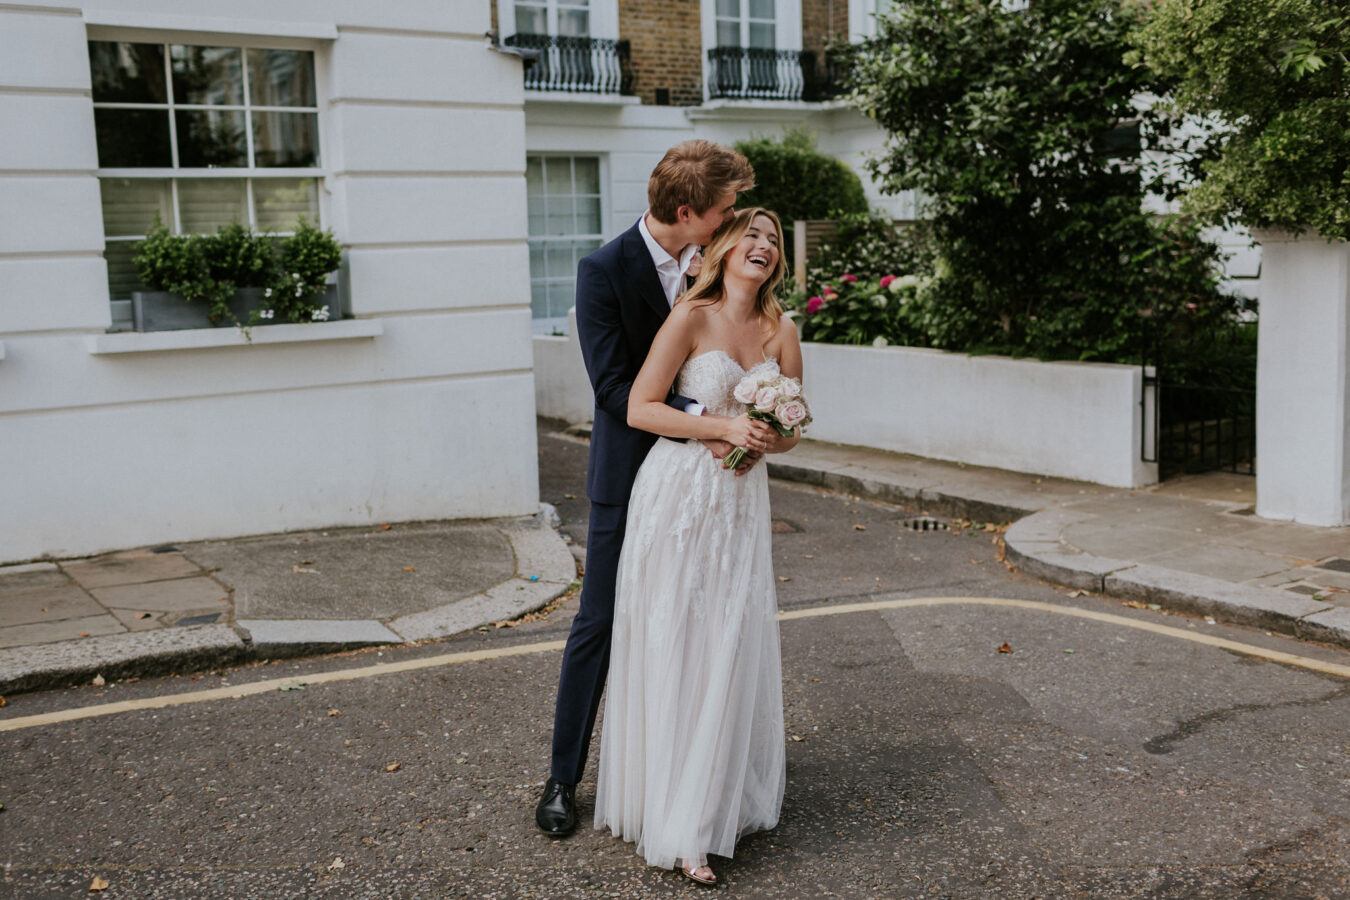 London Elopement at Chelsea Old Town Hall | Gareth & Olivia